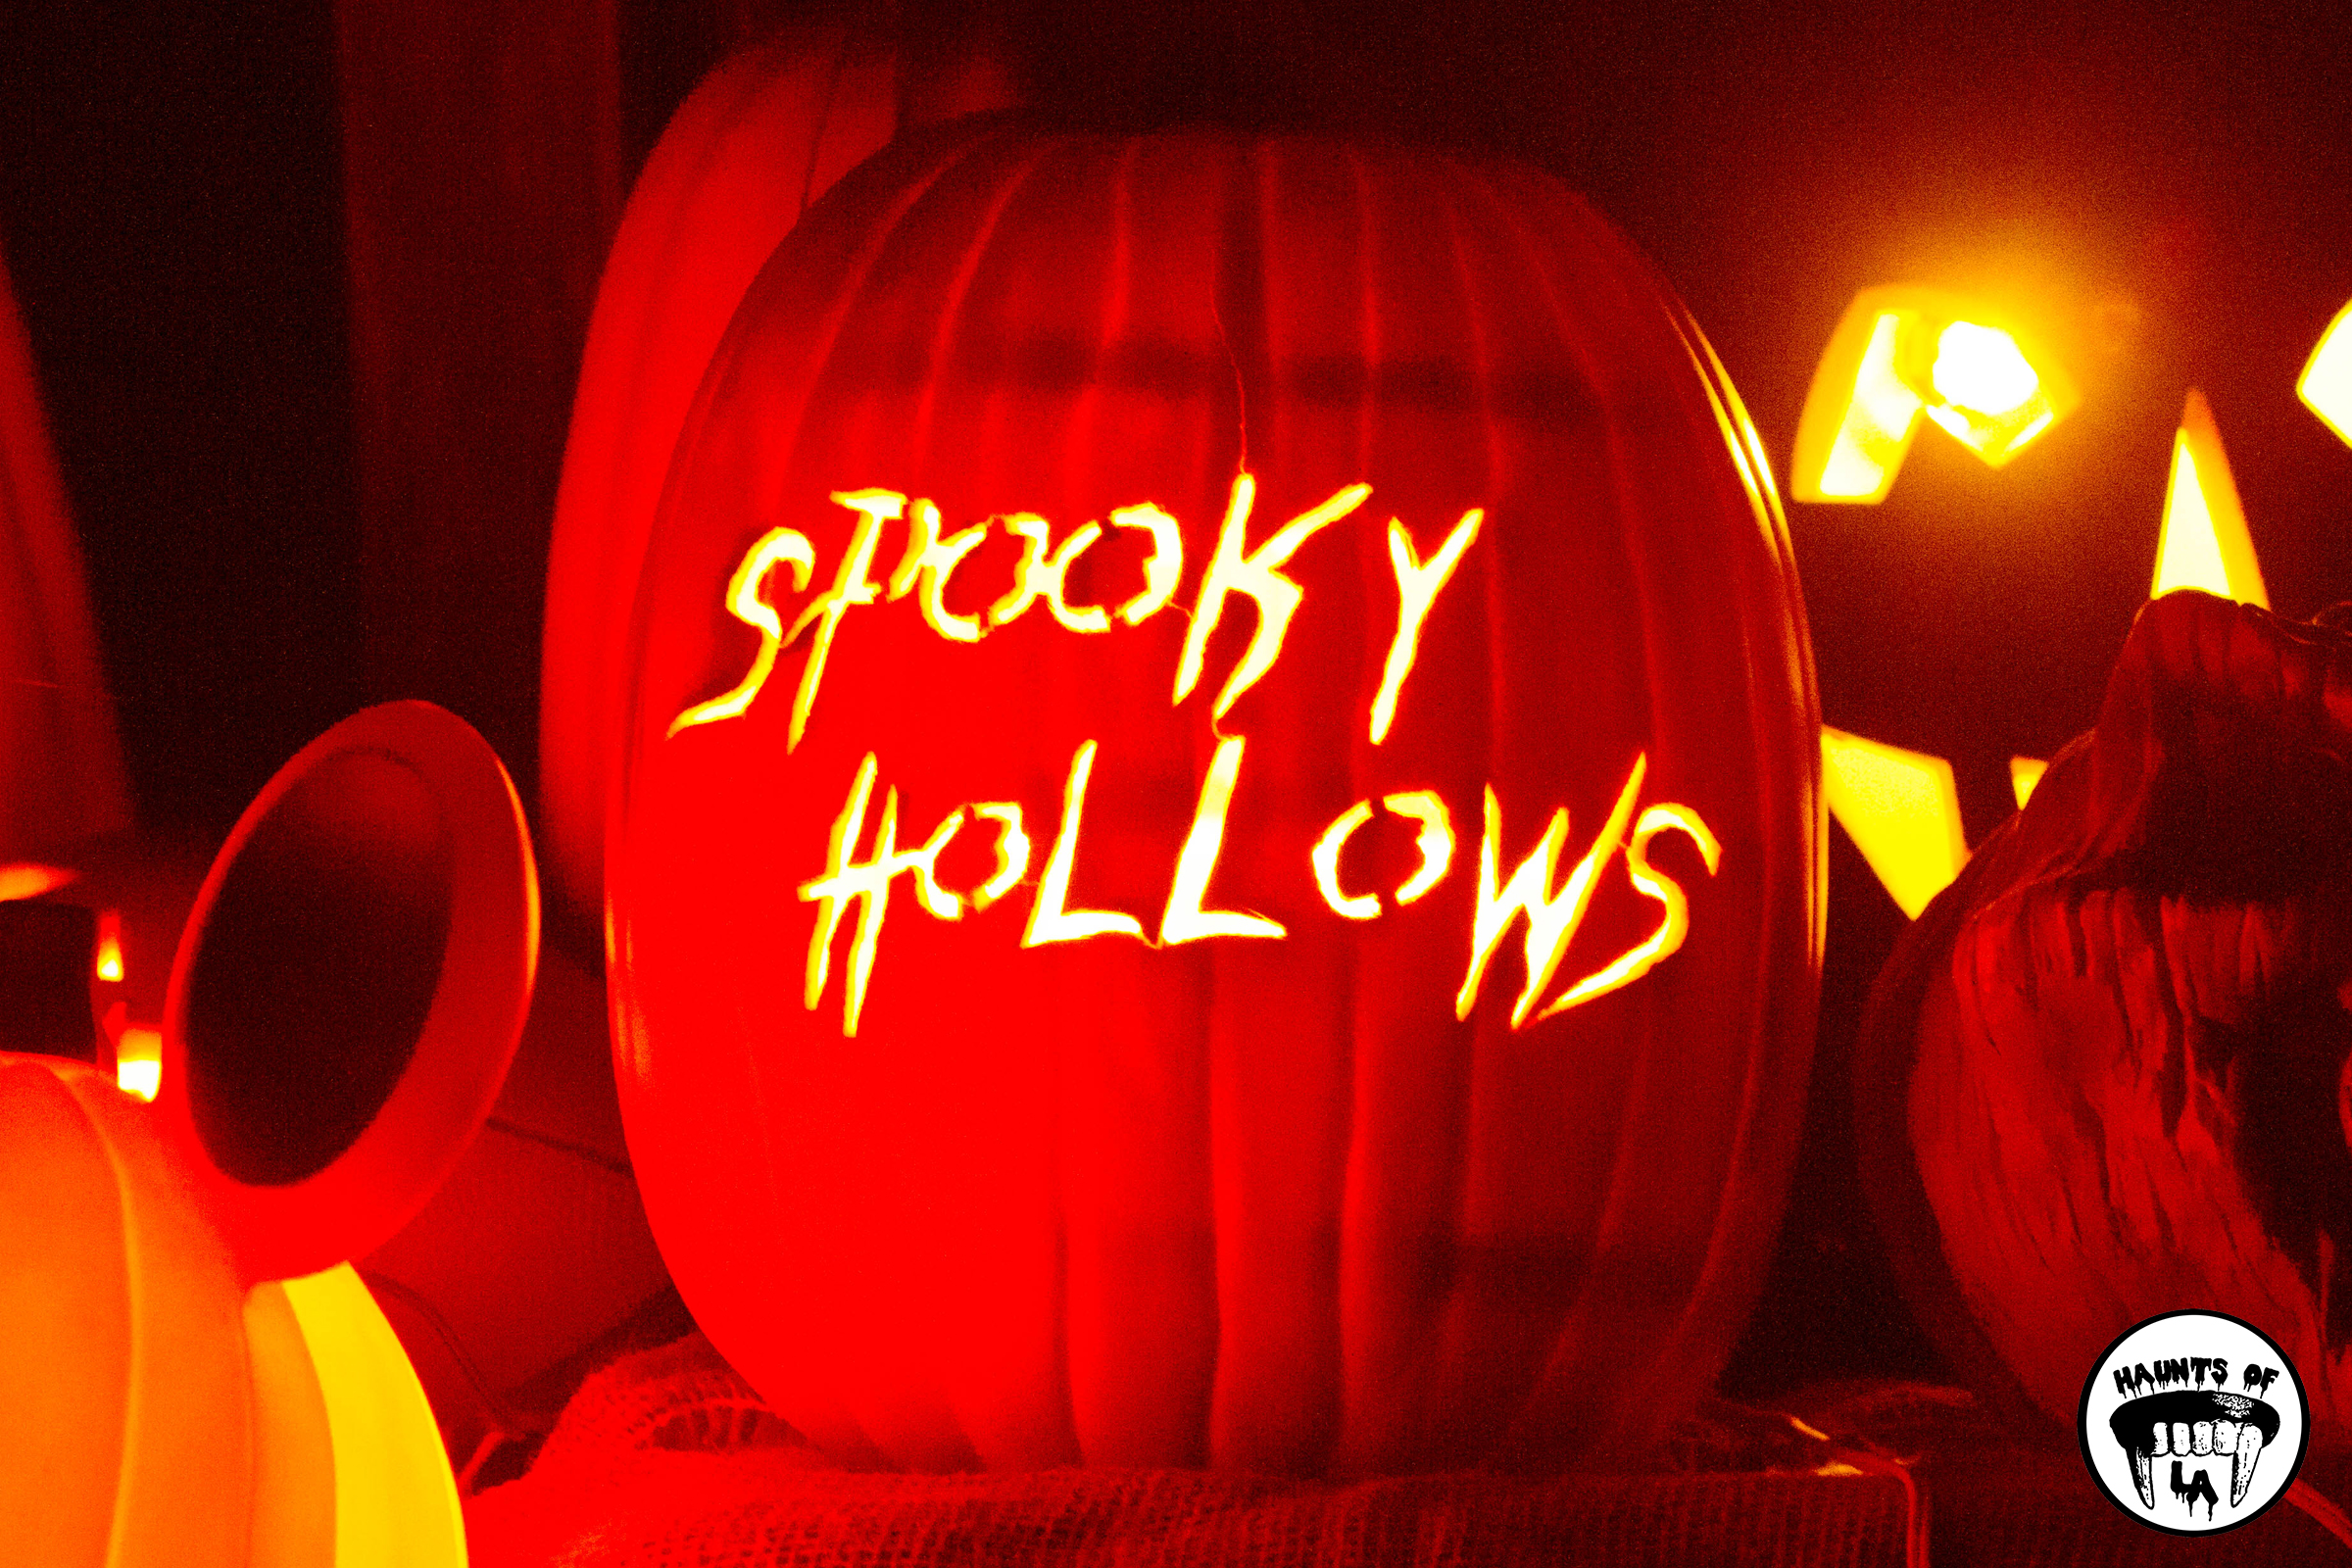 HOLA Spooky Hallows sized.jpg